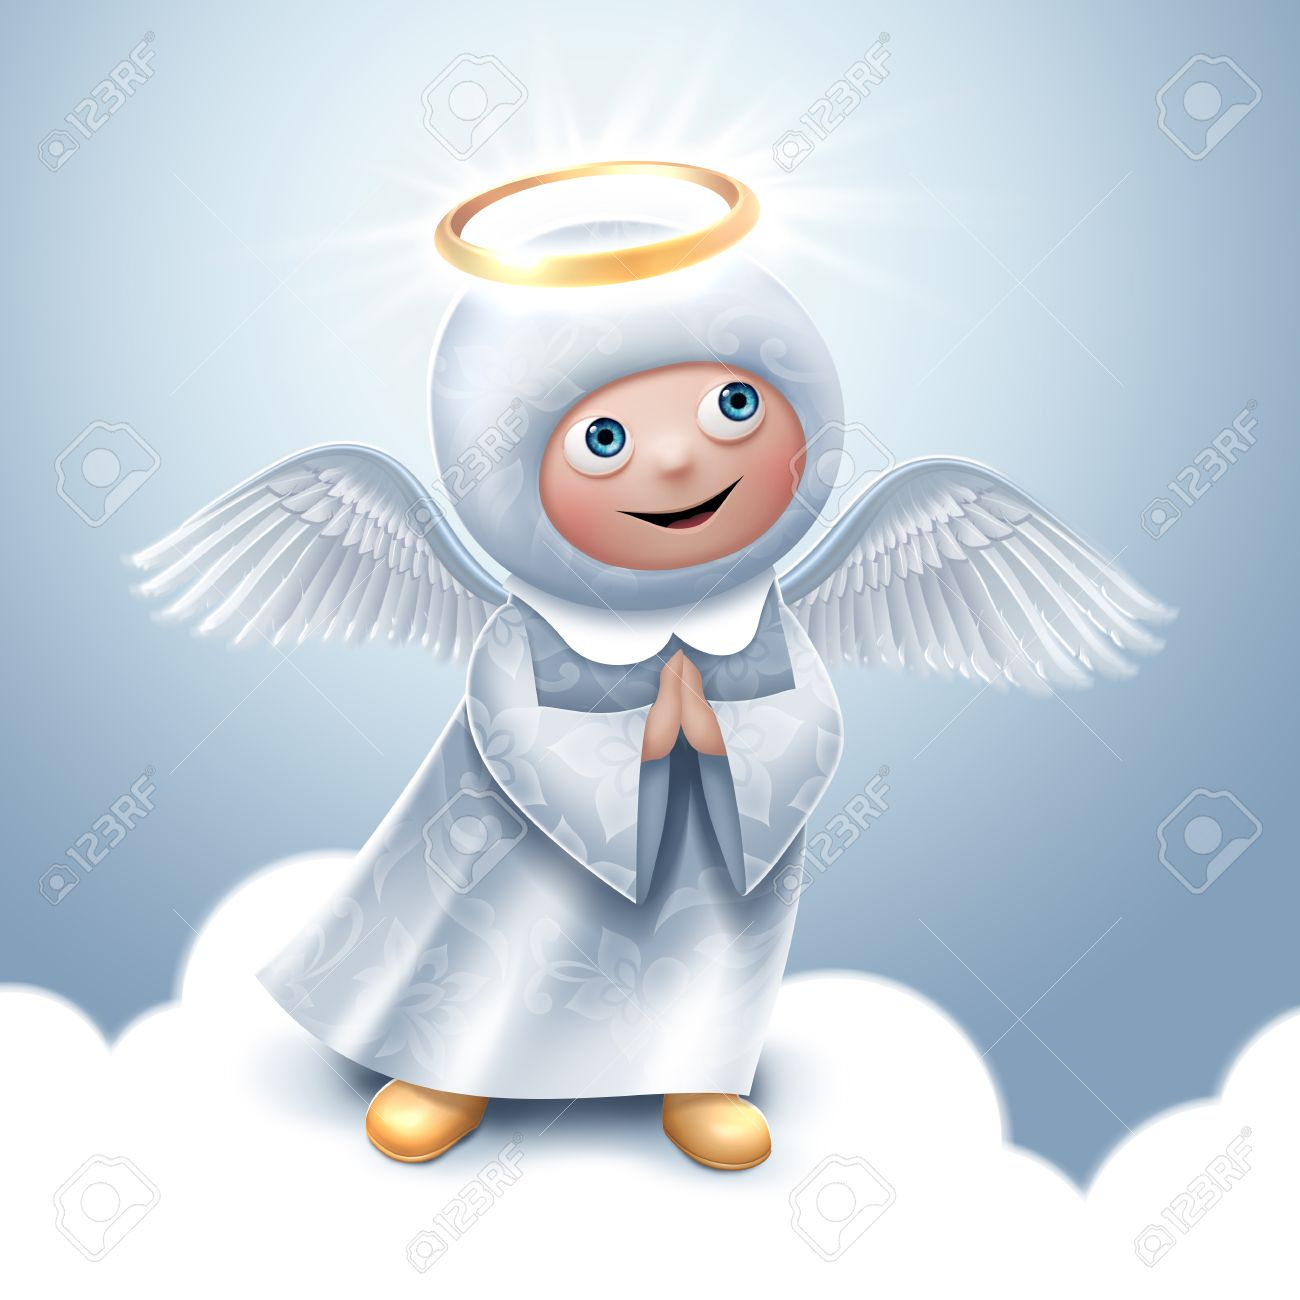 Praying Angel Clip-art, Christmas Greeting Card Stock Photo ...